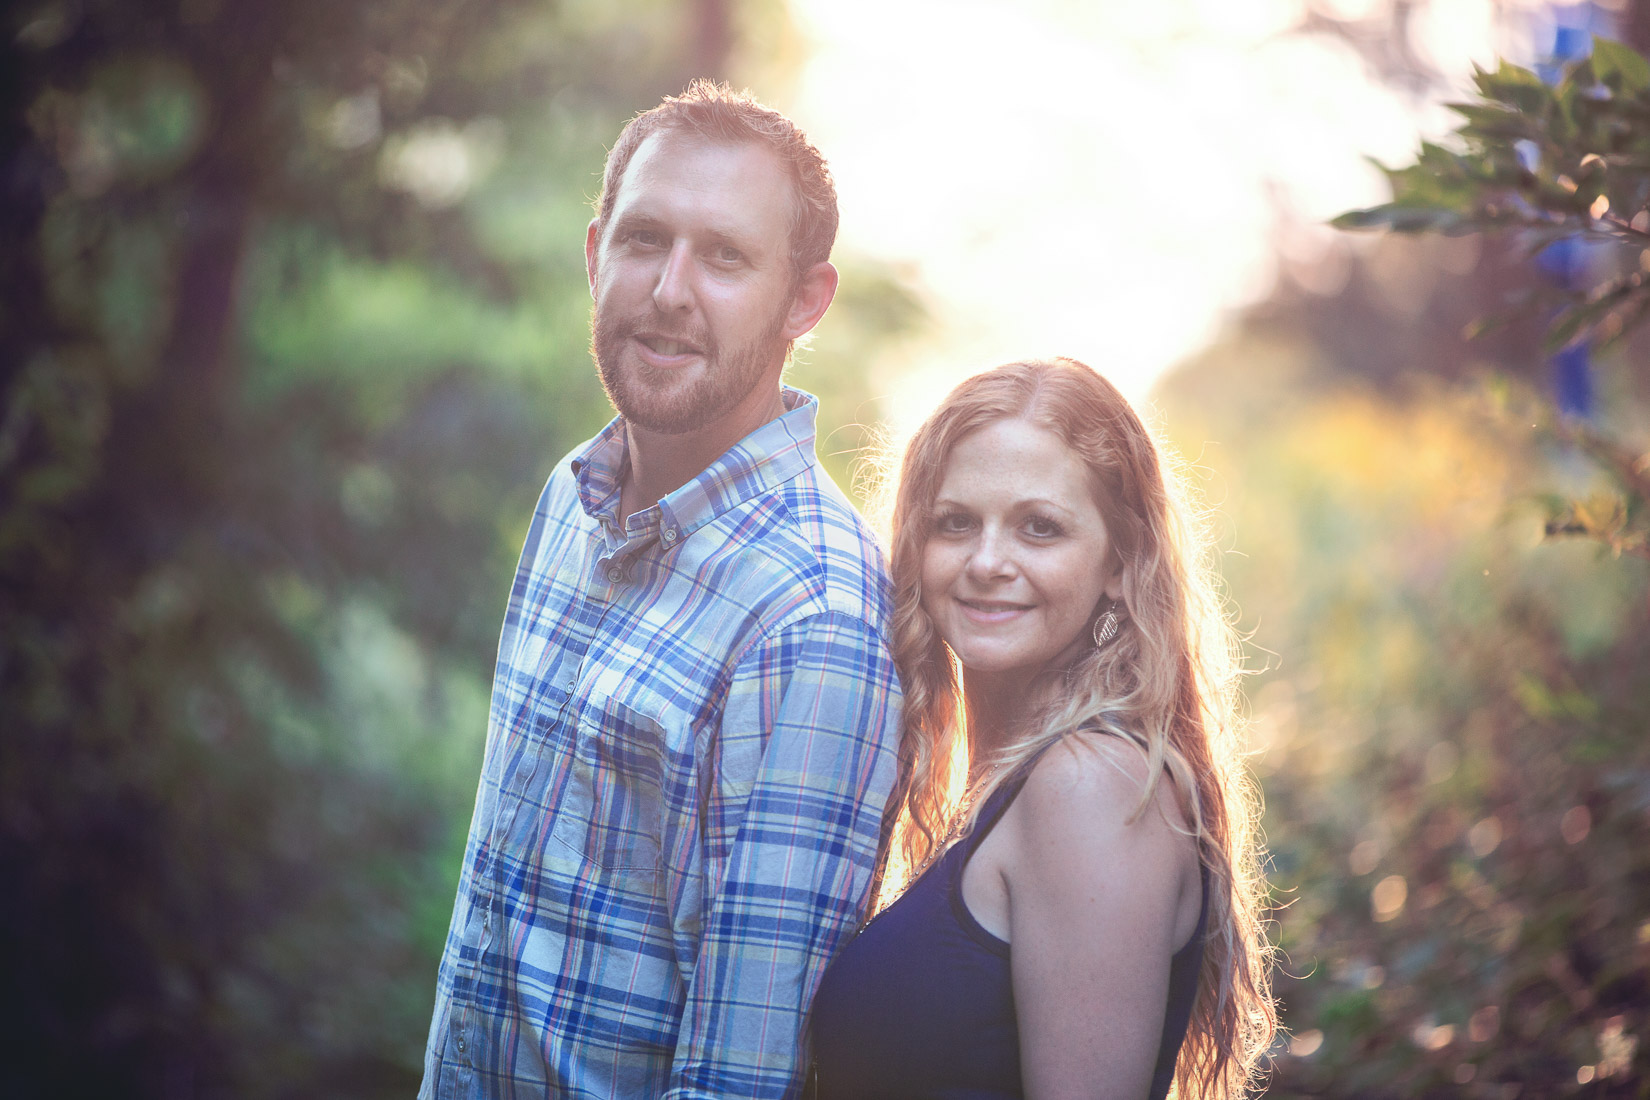 dublin-indian-run-falls-engagement-pics-4